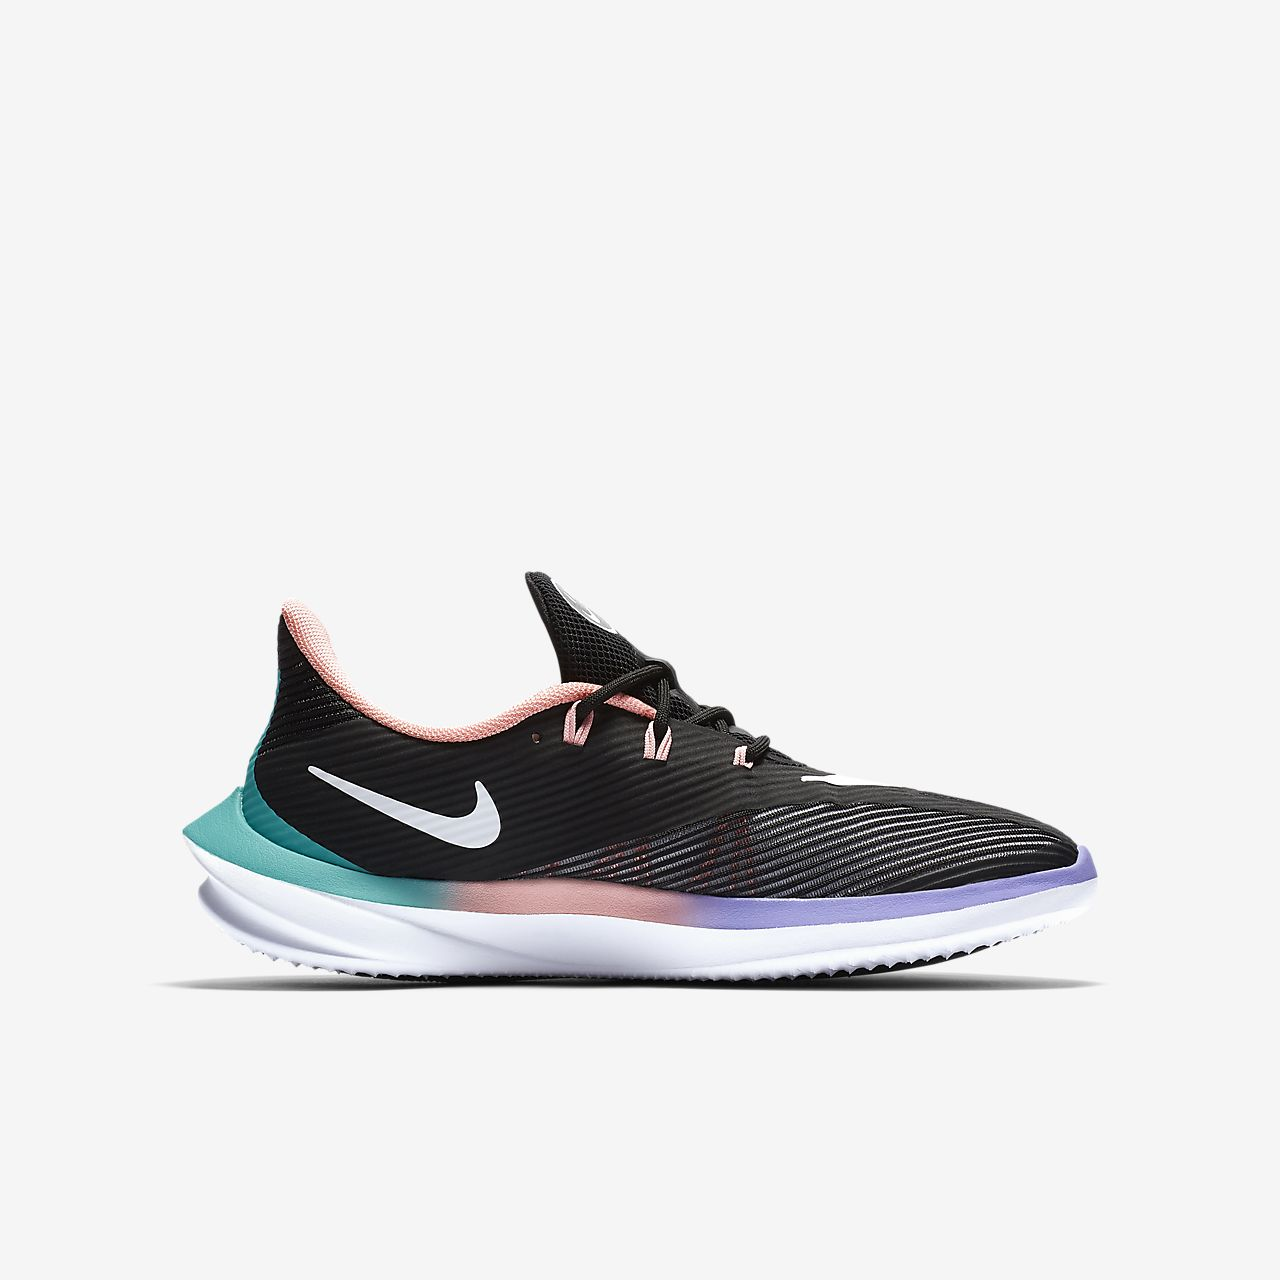 9e0e49b00c00 Nike Future Speed Little Big Kids  Running Shoe. Nike.com